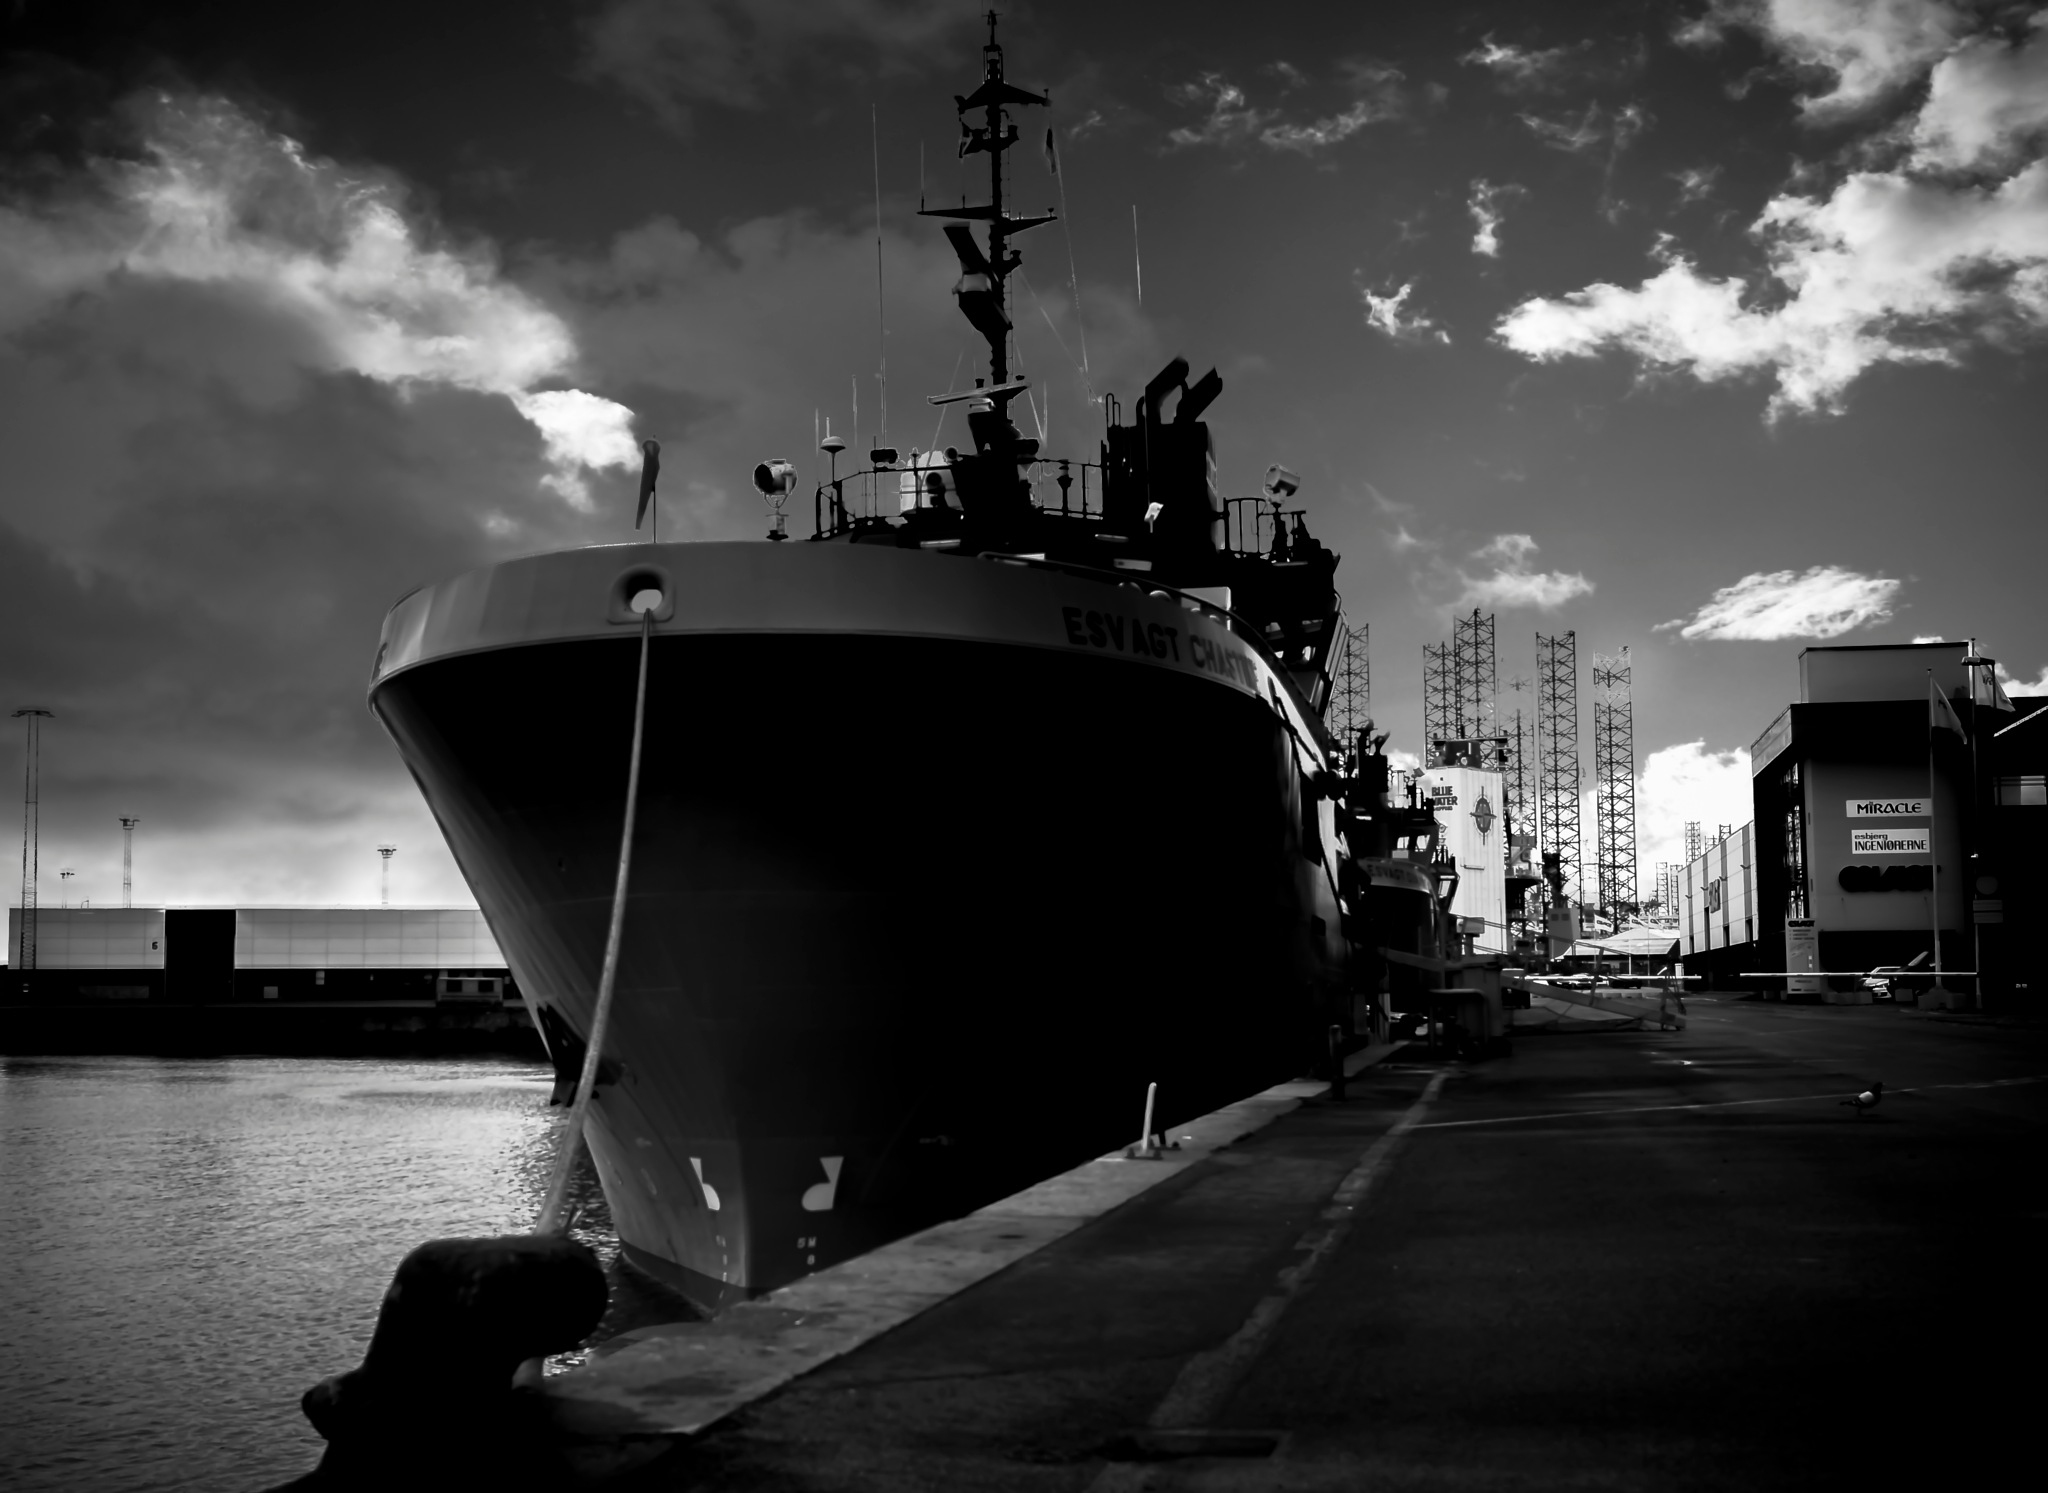 Ship and its sky  by Black cat photography